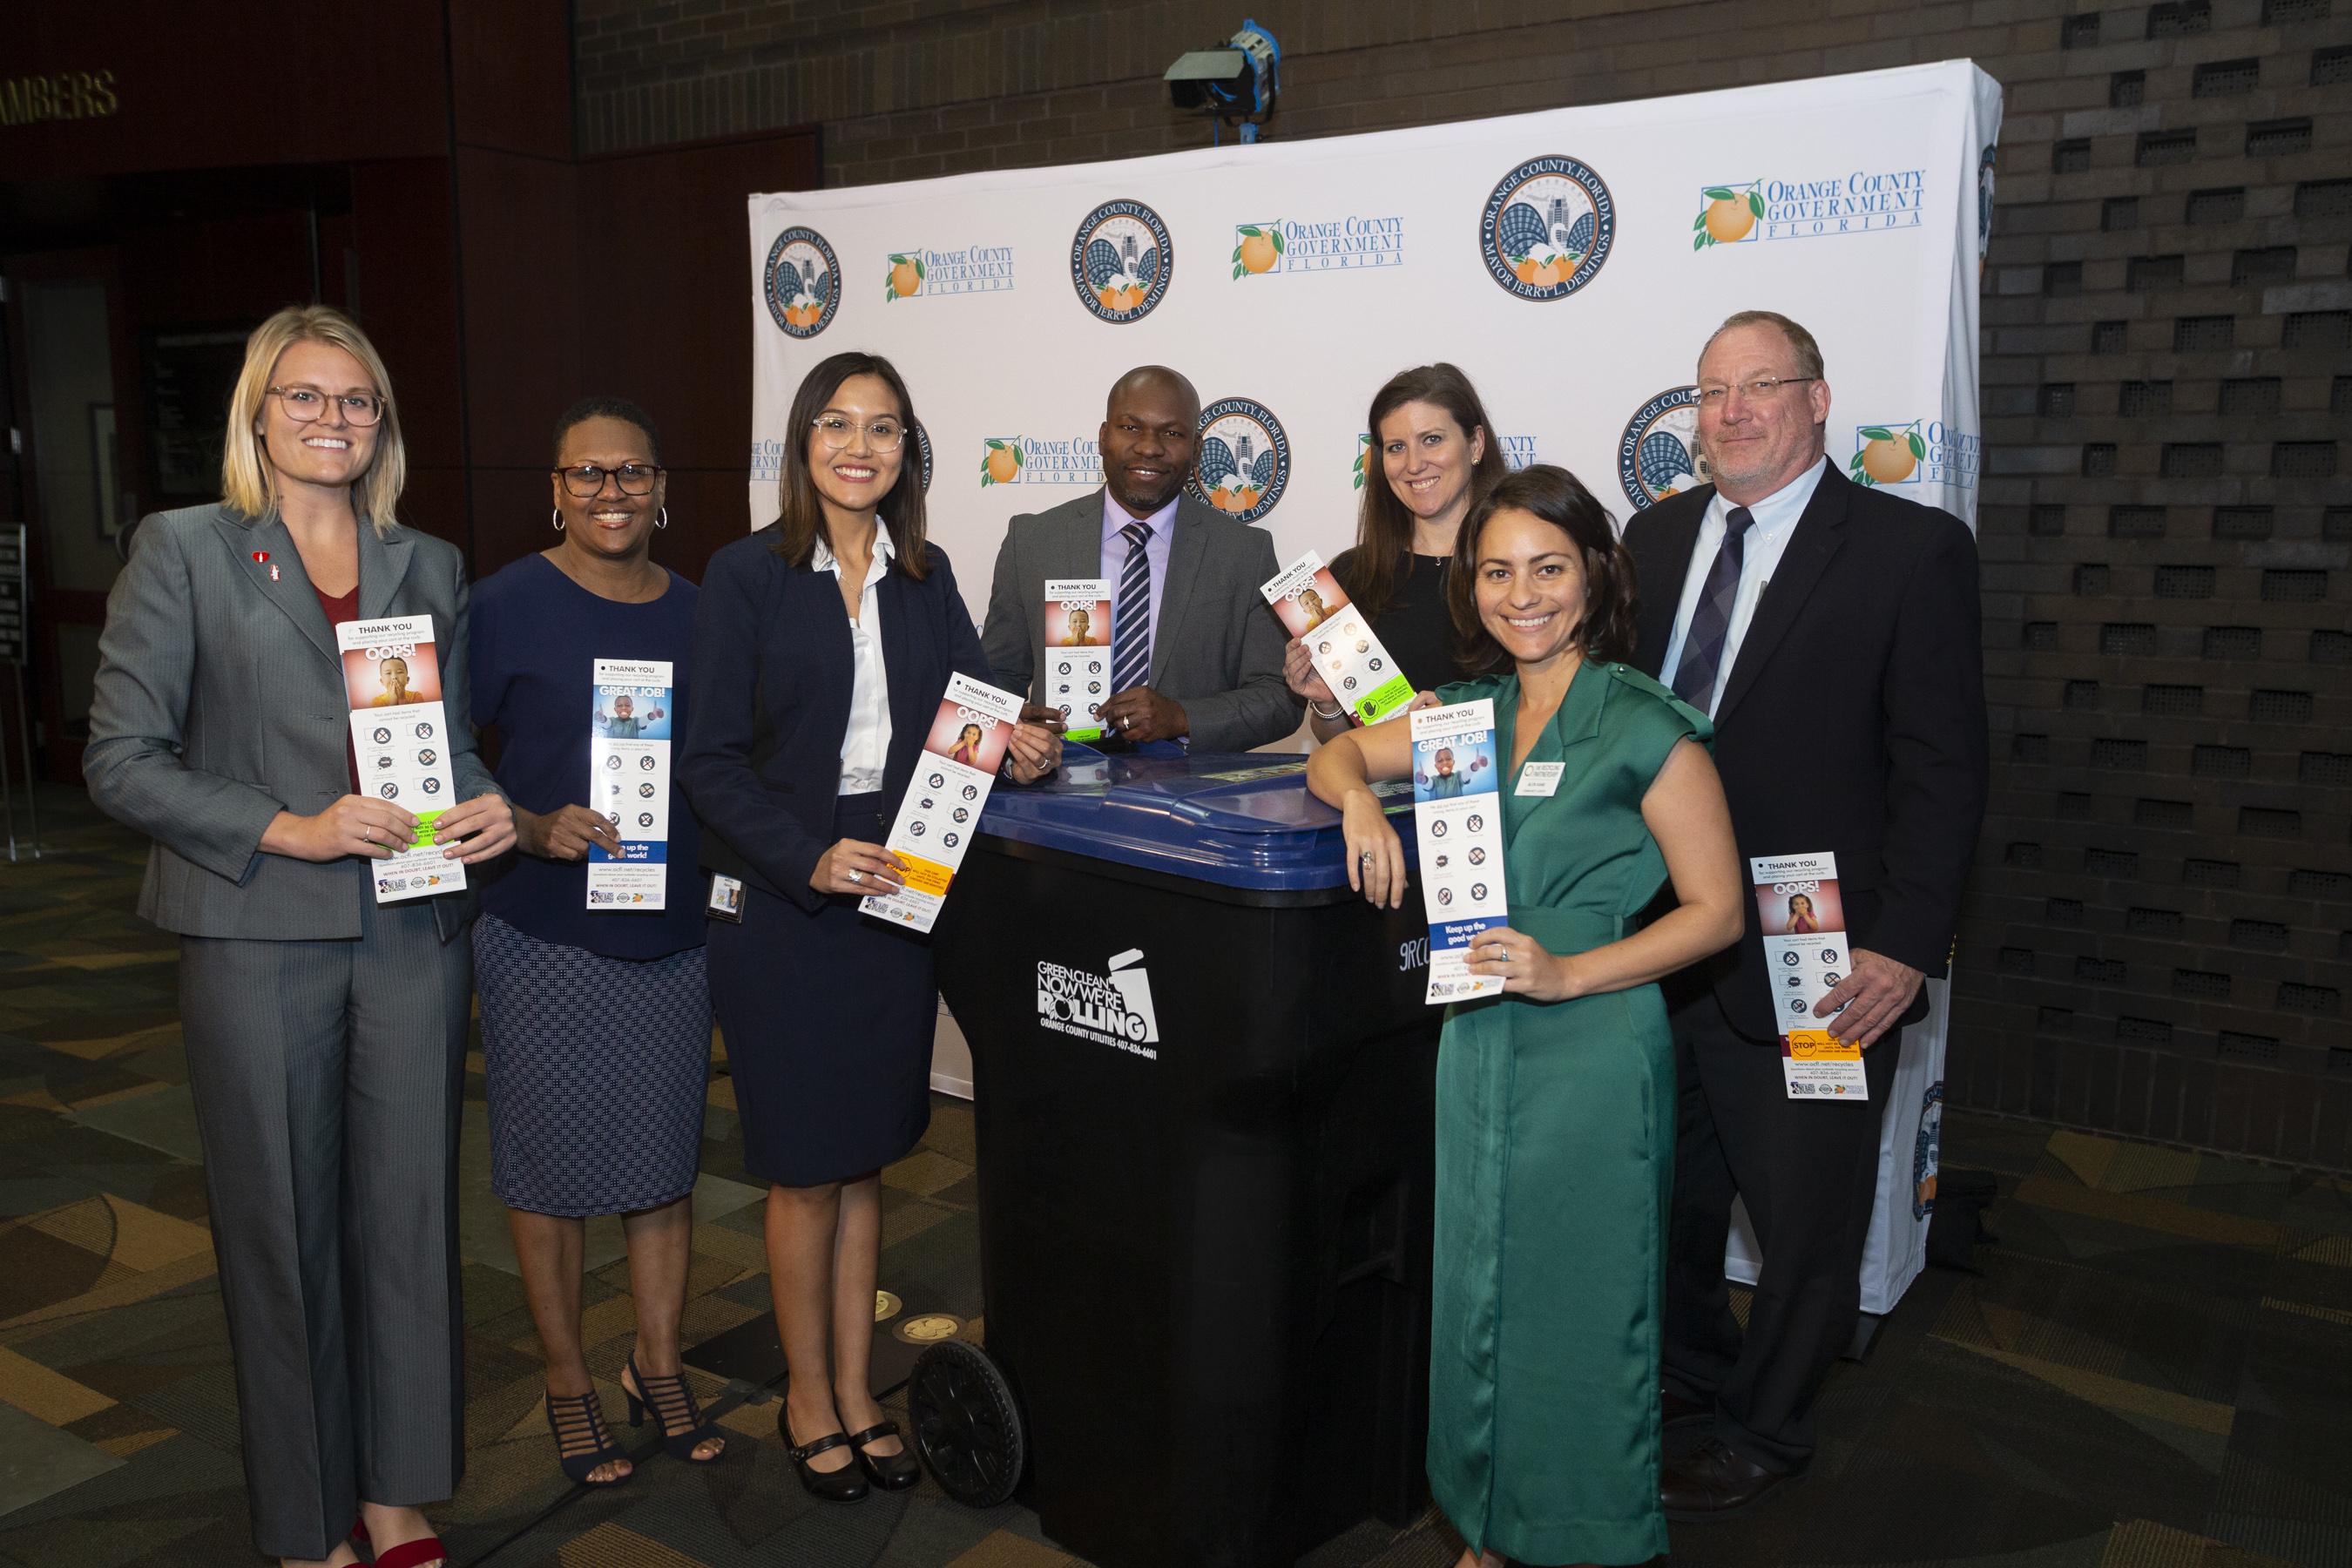 Left to right, Jennifer Baugher with Coca-Cola Florida, Marchelle Allen, Cindy Harpel and Allen Cole with Orange County Utilities, Shannon Sellman with Coca-Cola corporate, Alita Kane with The Recycling Partnership and David Gregory with Orange County Utilities, posing for a photo holding recycling flyers.